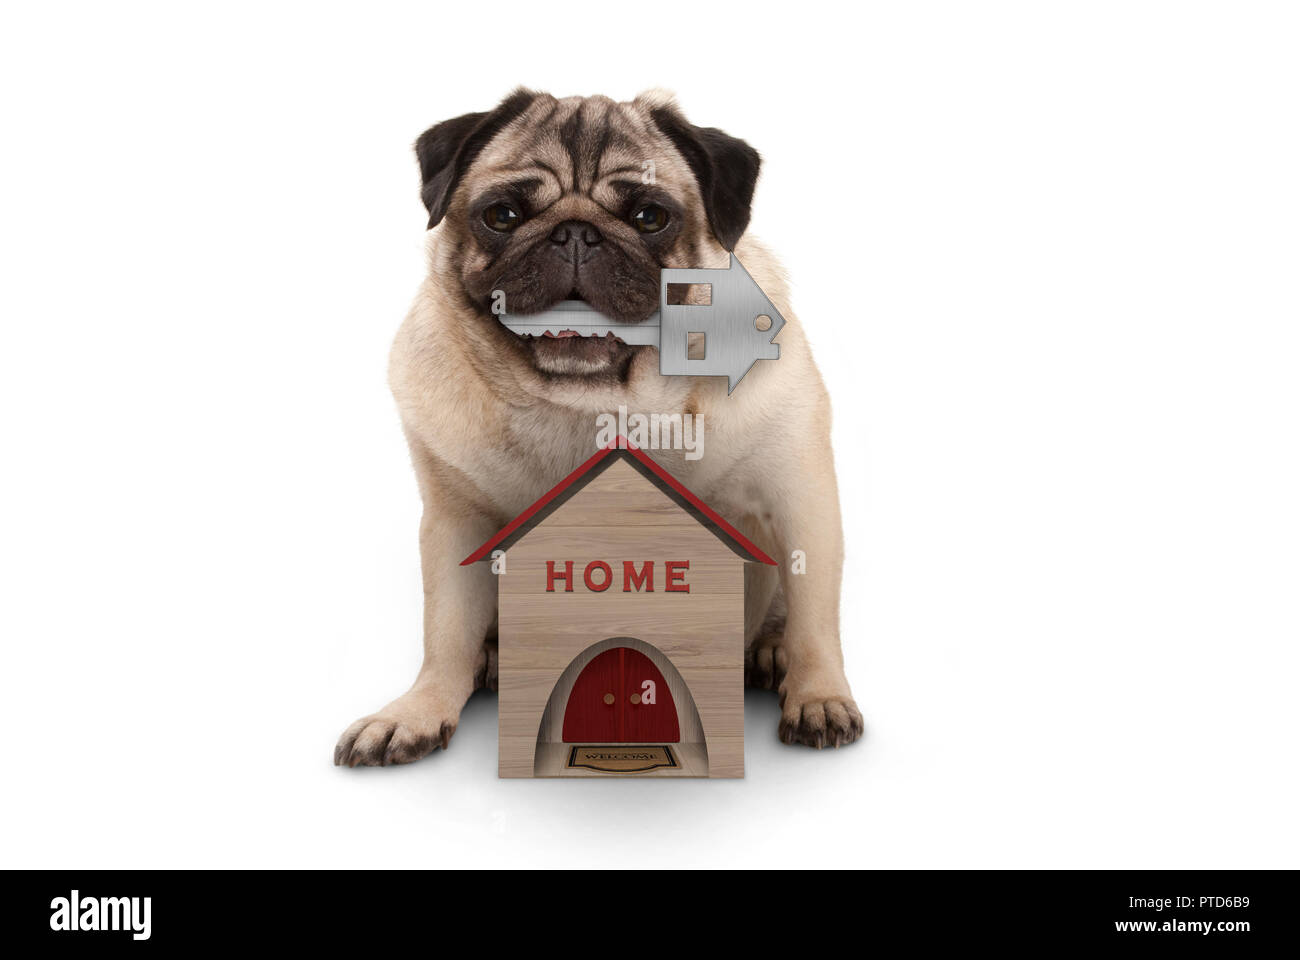 happy pug puppy dog with house key sitting down with miniature house, isolated on white background Stock Photo